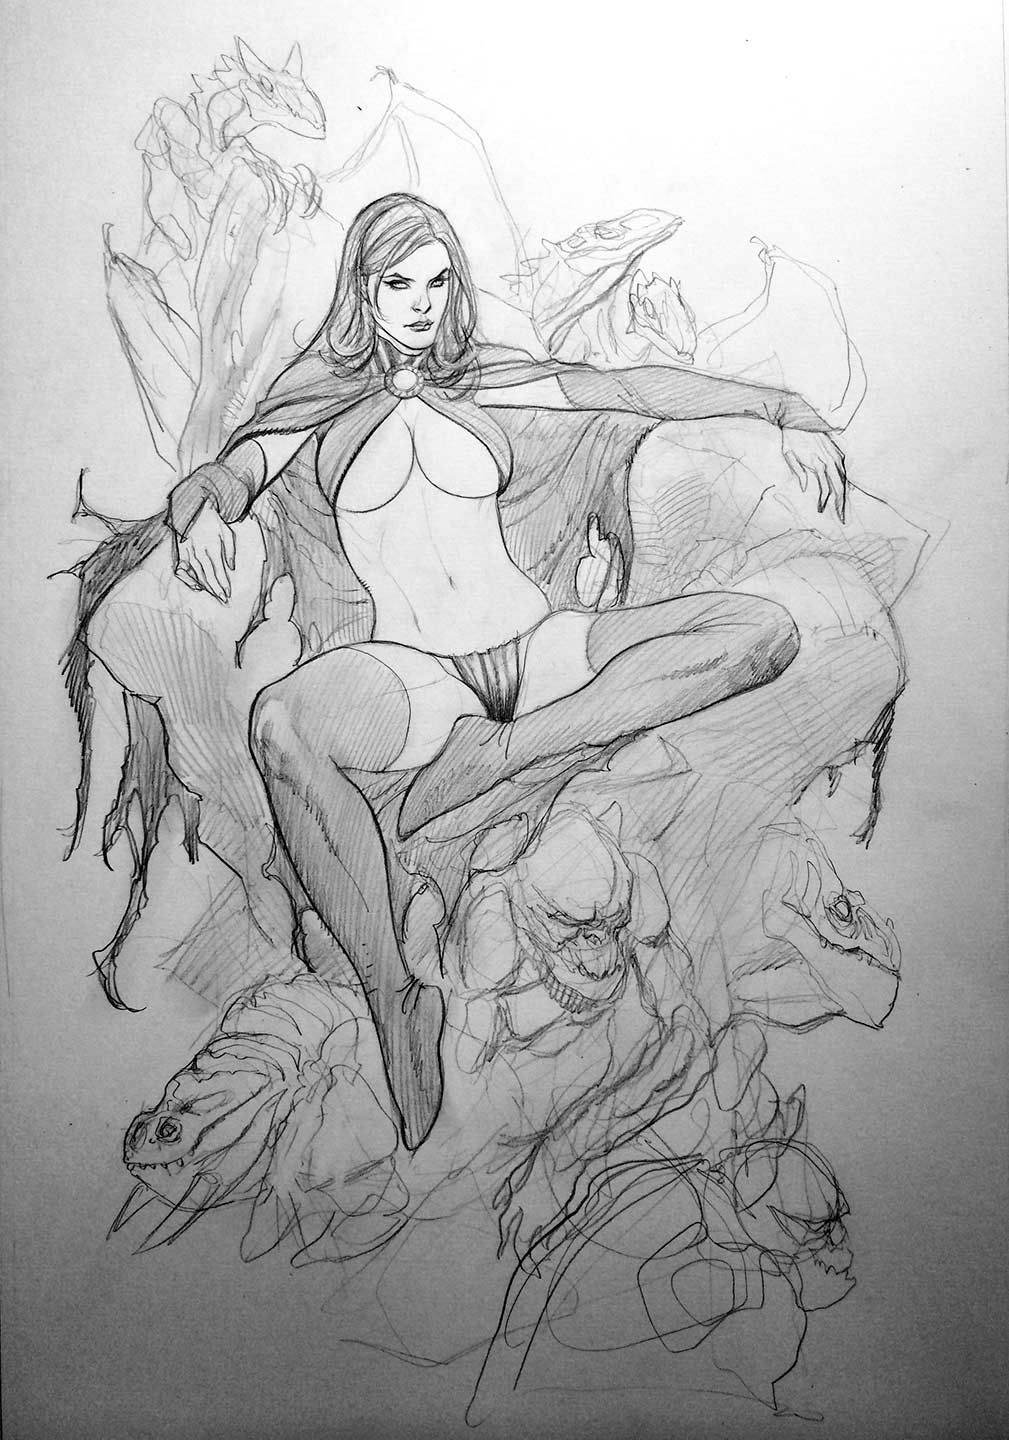 from Dash sci fi foxy women naked